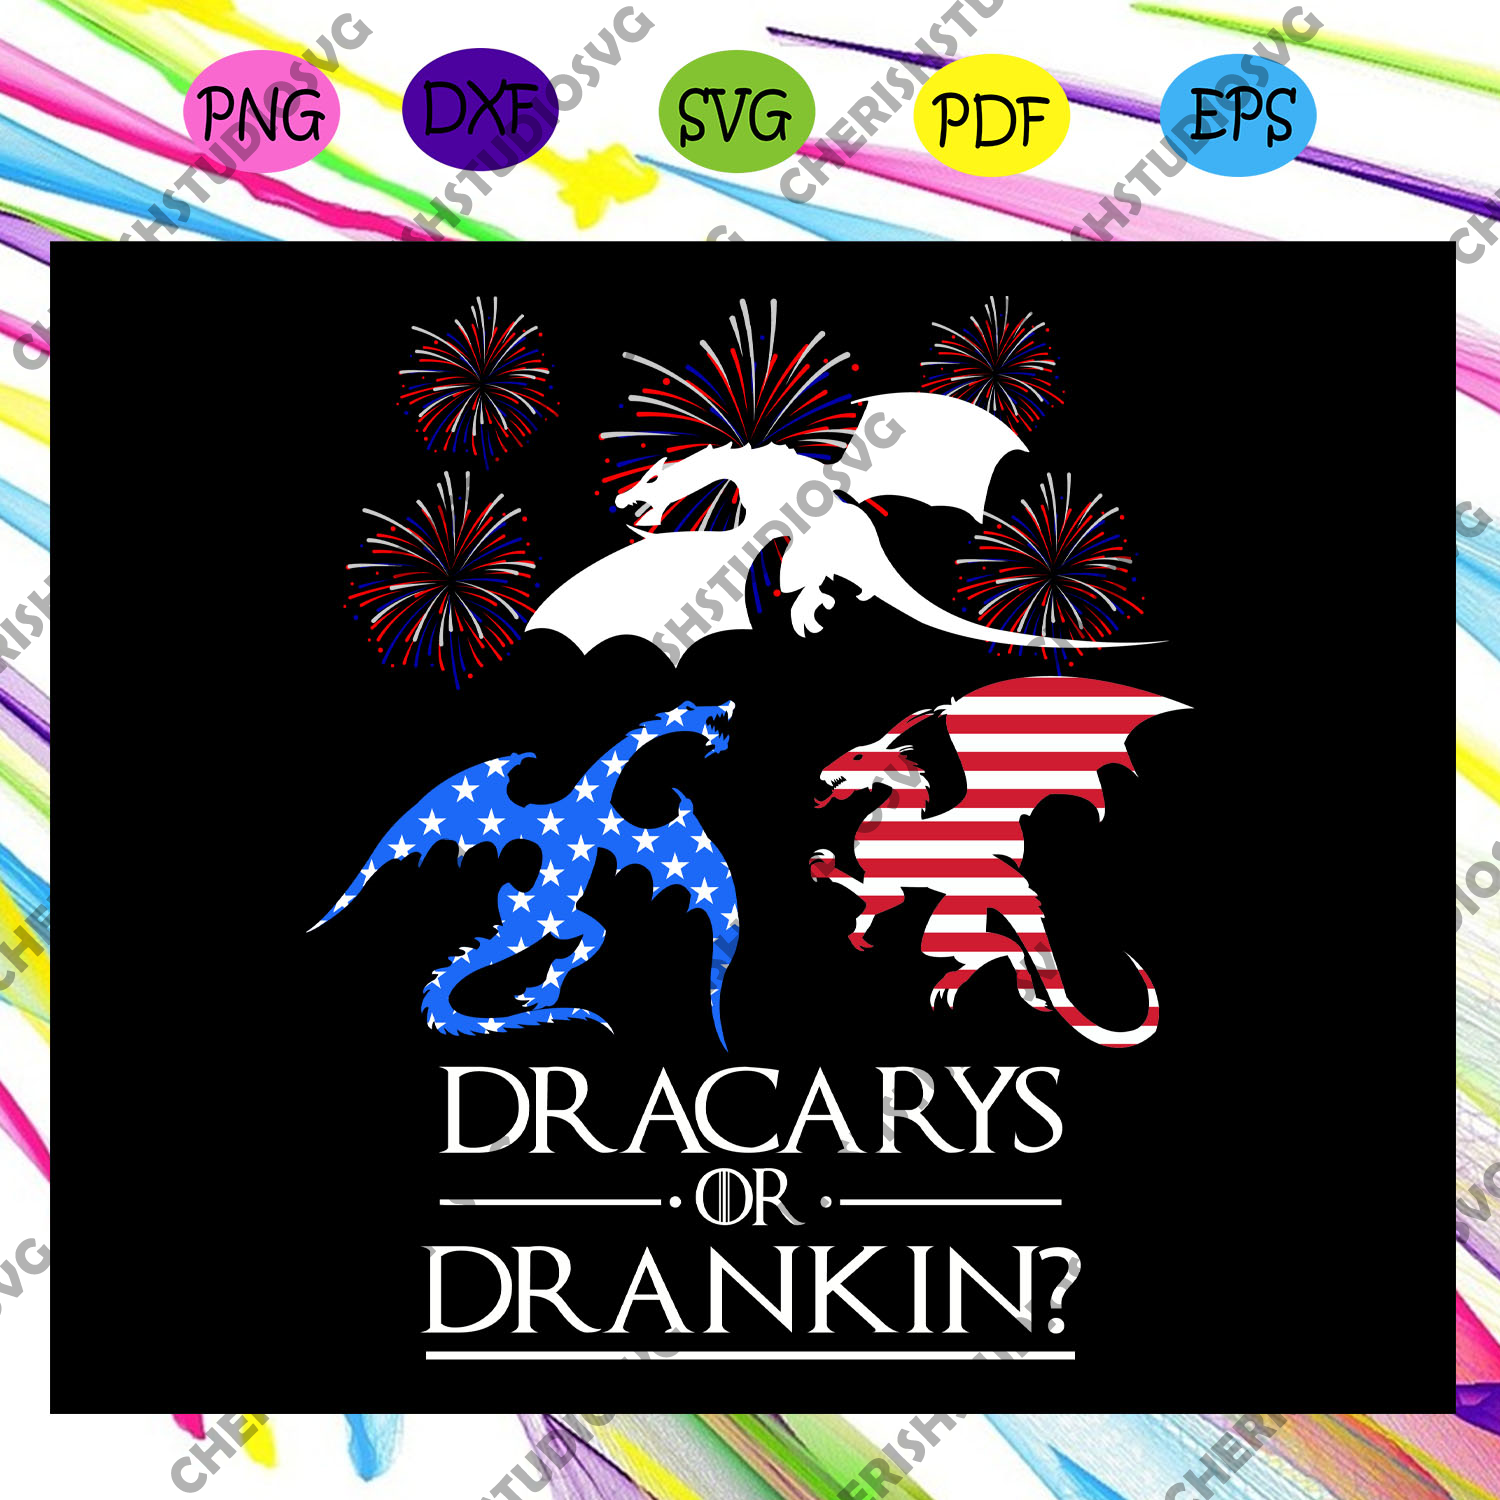 Dracarys or drank in, independence day svg,4th of july,funny 4th of july,america flag,4th july gift,independence gift,america flag For Silhouette, Files For Cricut, SVG, DXF, EPS, PNG Instant Download